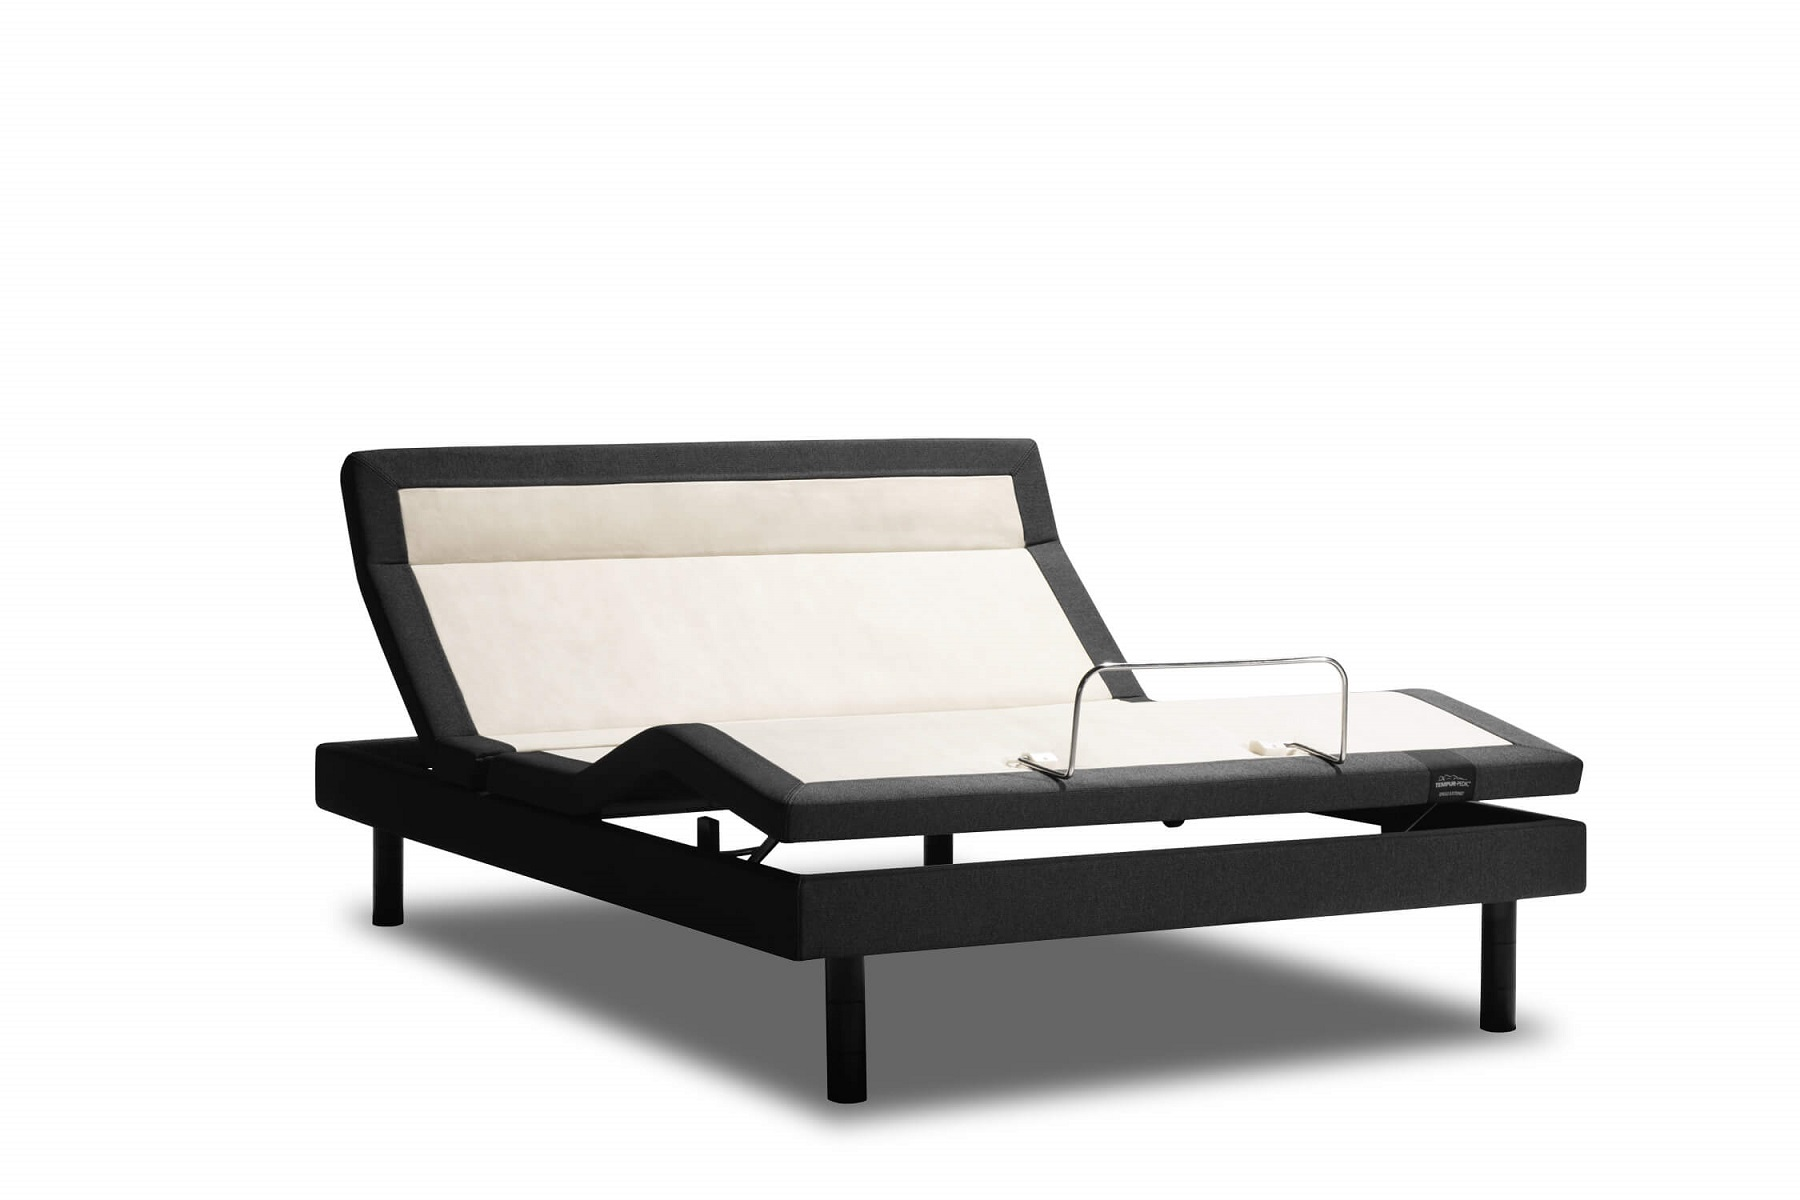 Tempur-Pedic Tempur Ergo Extend Adjustable Bed Base | Metro Mattress